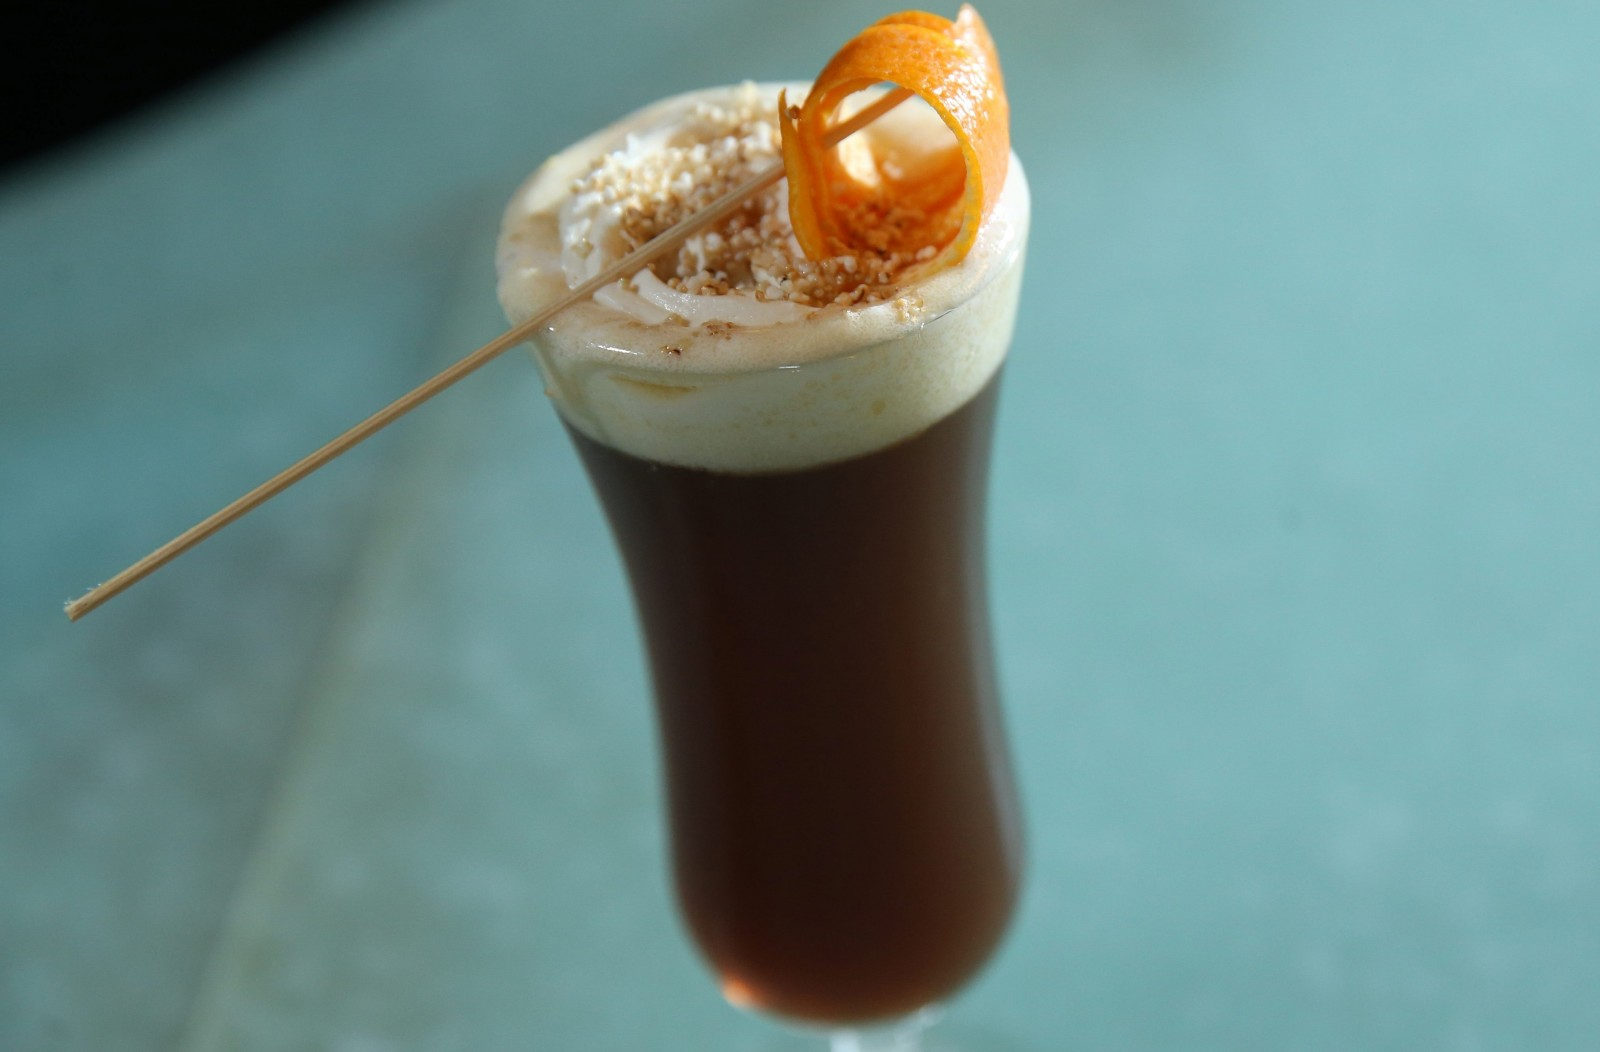 Bourbon & Butter's new winter drink called the Female Dog, made with rye whiskey infused with preserved plum, amaranthe and sesame, Public Revolution Coffee, sesame and topped with butter cream and amaranth garnished with orange peel. (Sharon Cantillon/Buffalo News)